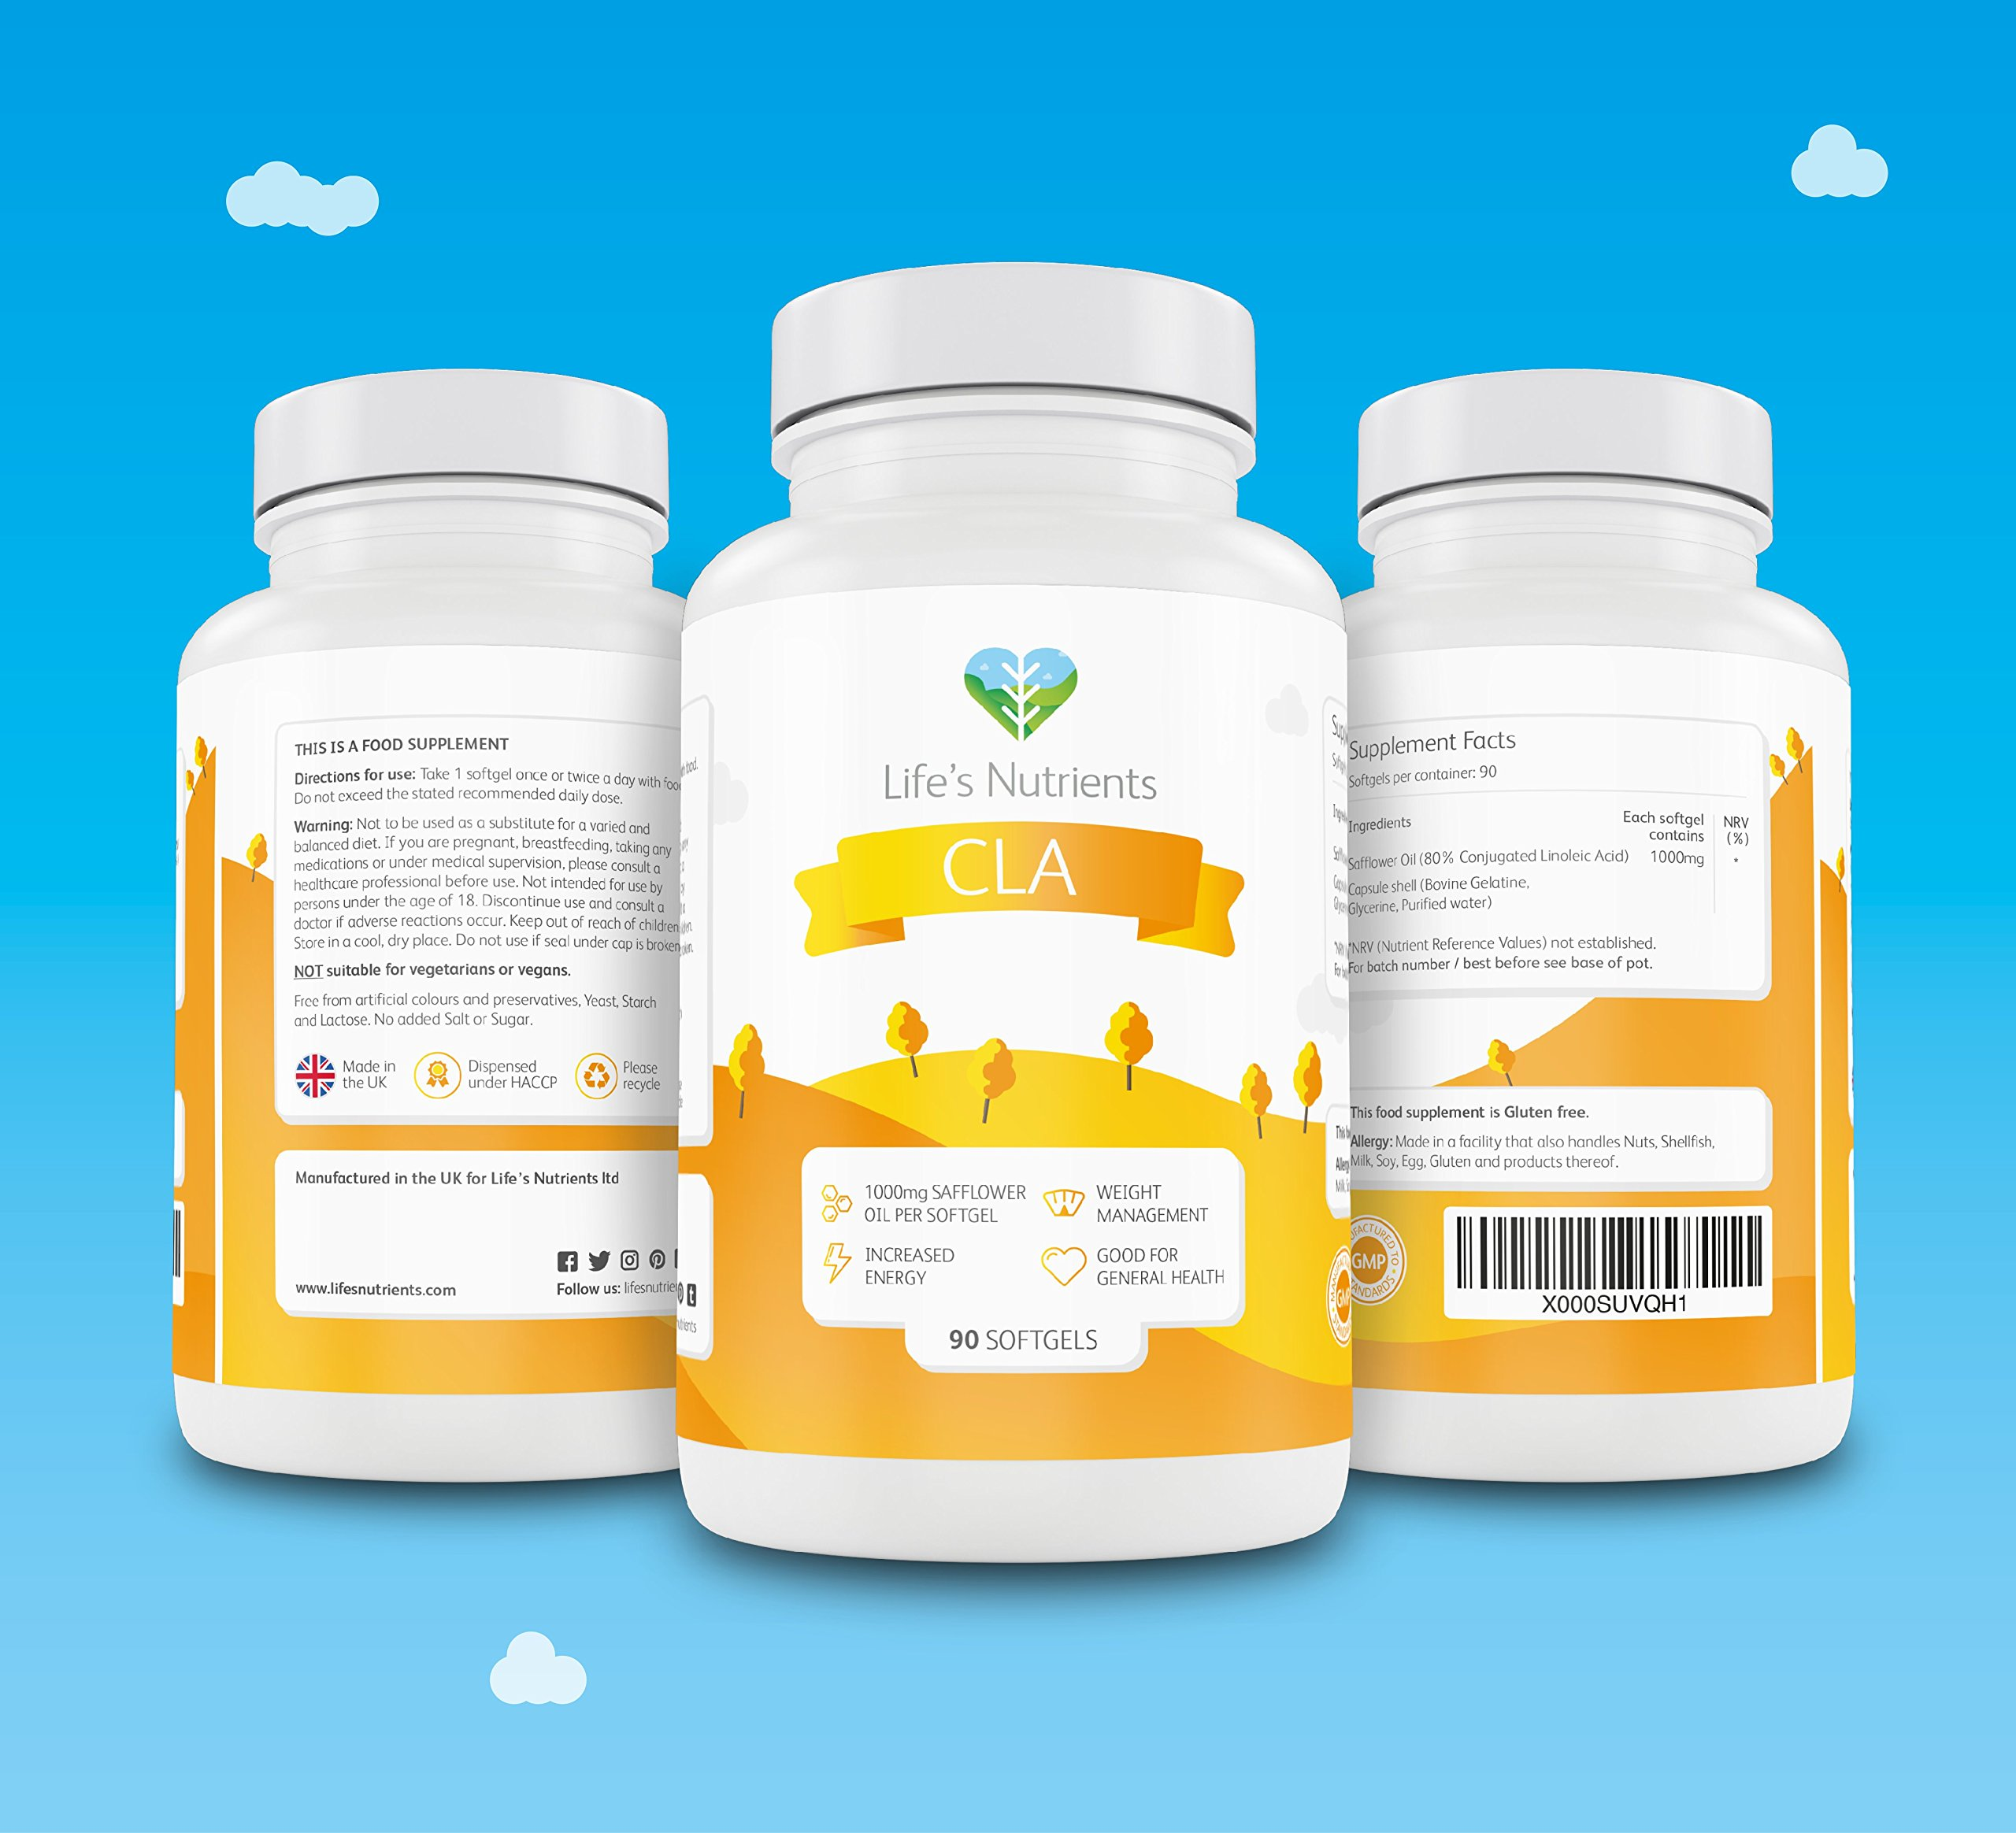 81C3RmUADzL - CLA Providing 1000mg   90 softgels   Natural Fat Burner and Muscle Mass Builder   Conjugated Linoleic Acid   Manufactured in The UK